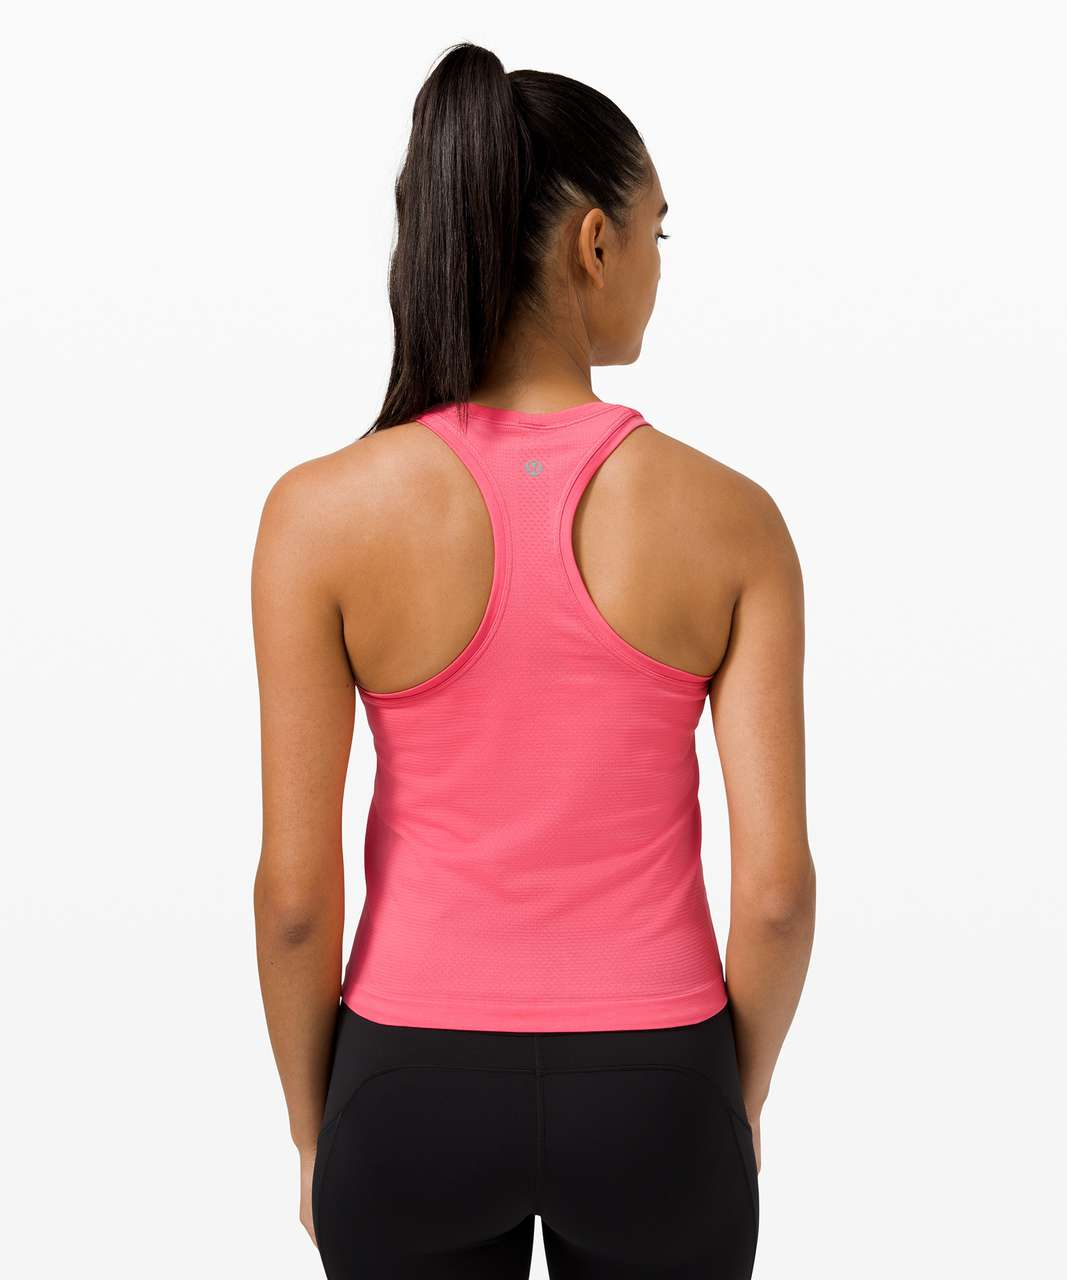 Lululemon Swiftly Tech Racerback 2.0 *Race Length - Guava Pink / Guava Pink